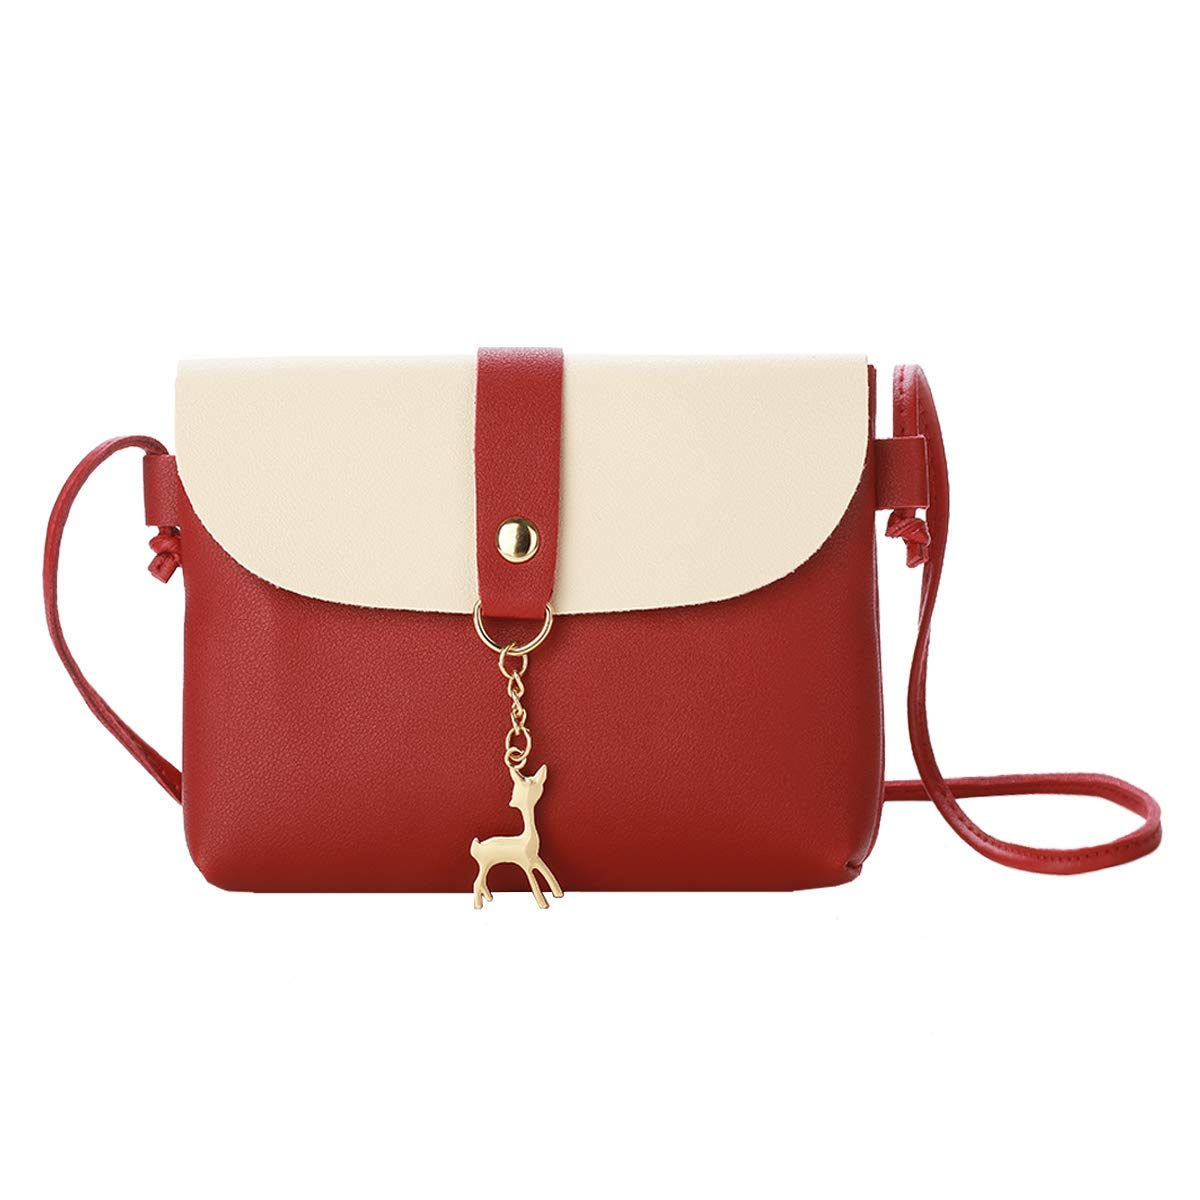 Small Crossbody Purse for Women With Pendant,PU Leather Crossbody Bag With Strap Cell Phone Bag for Girl,Red by Lanling (Image #1)